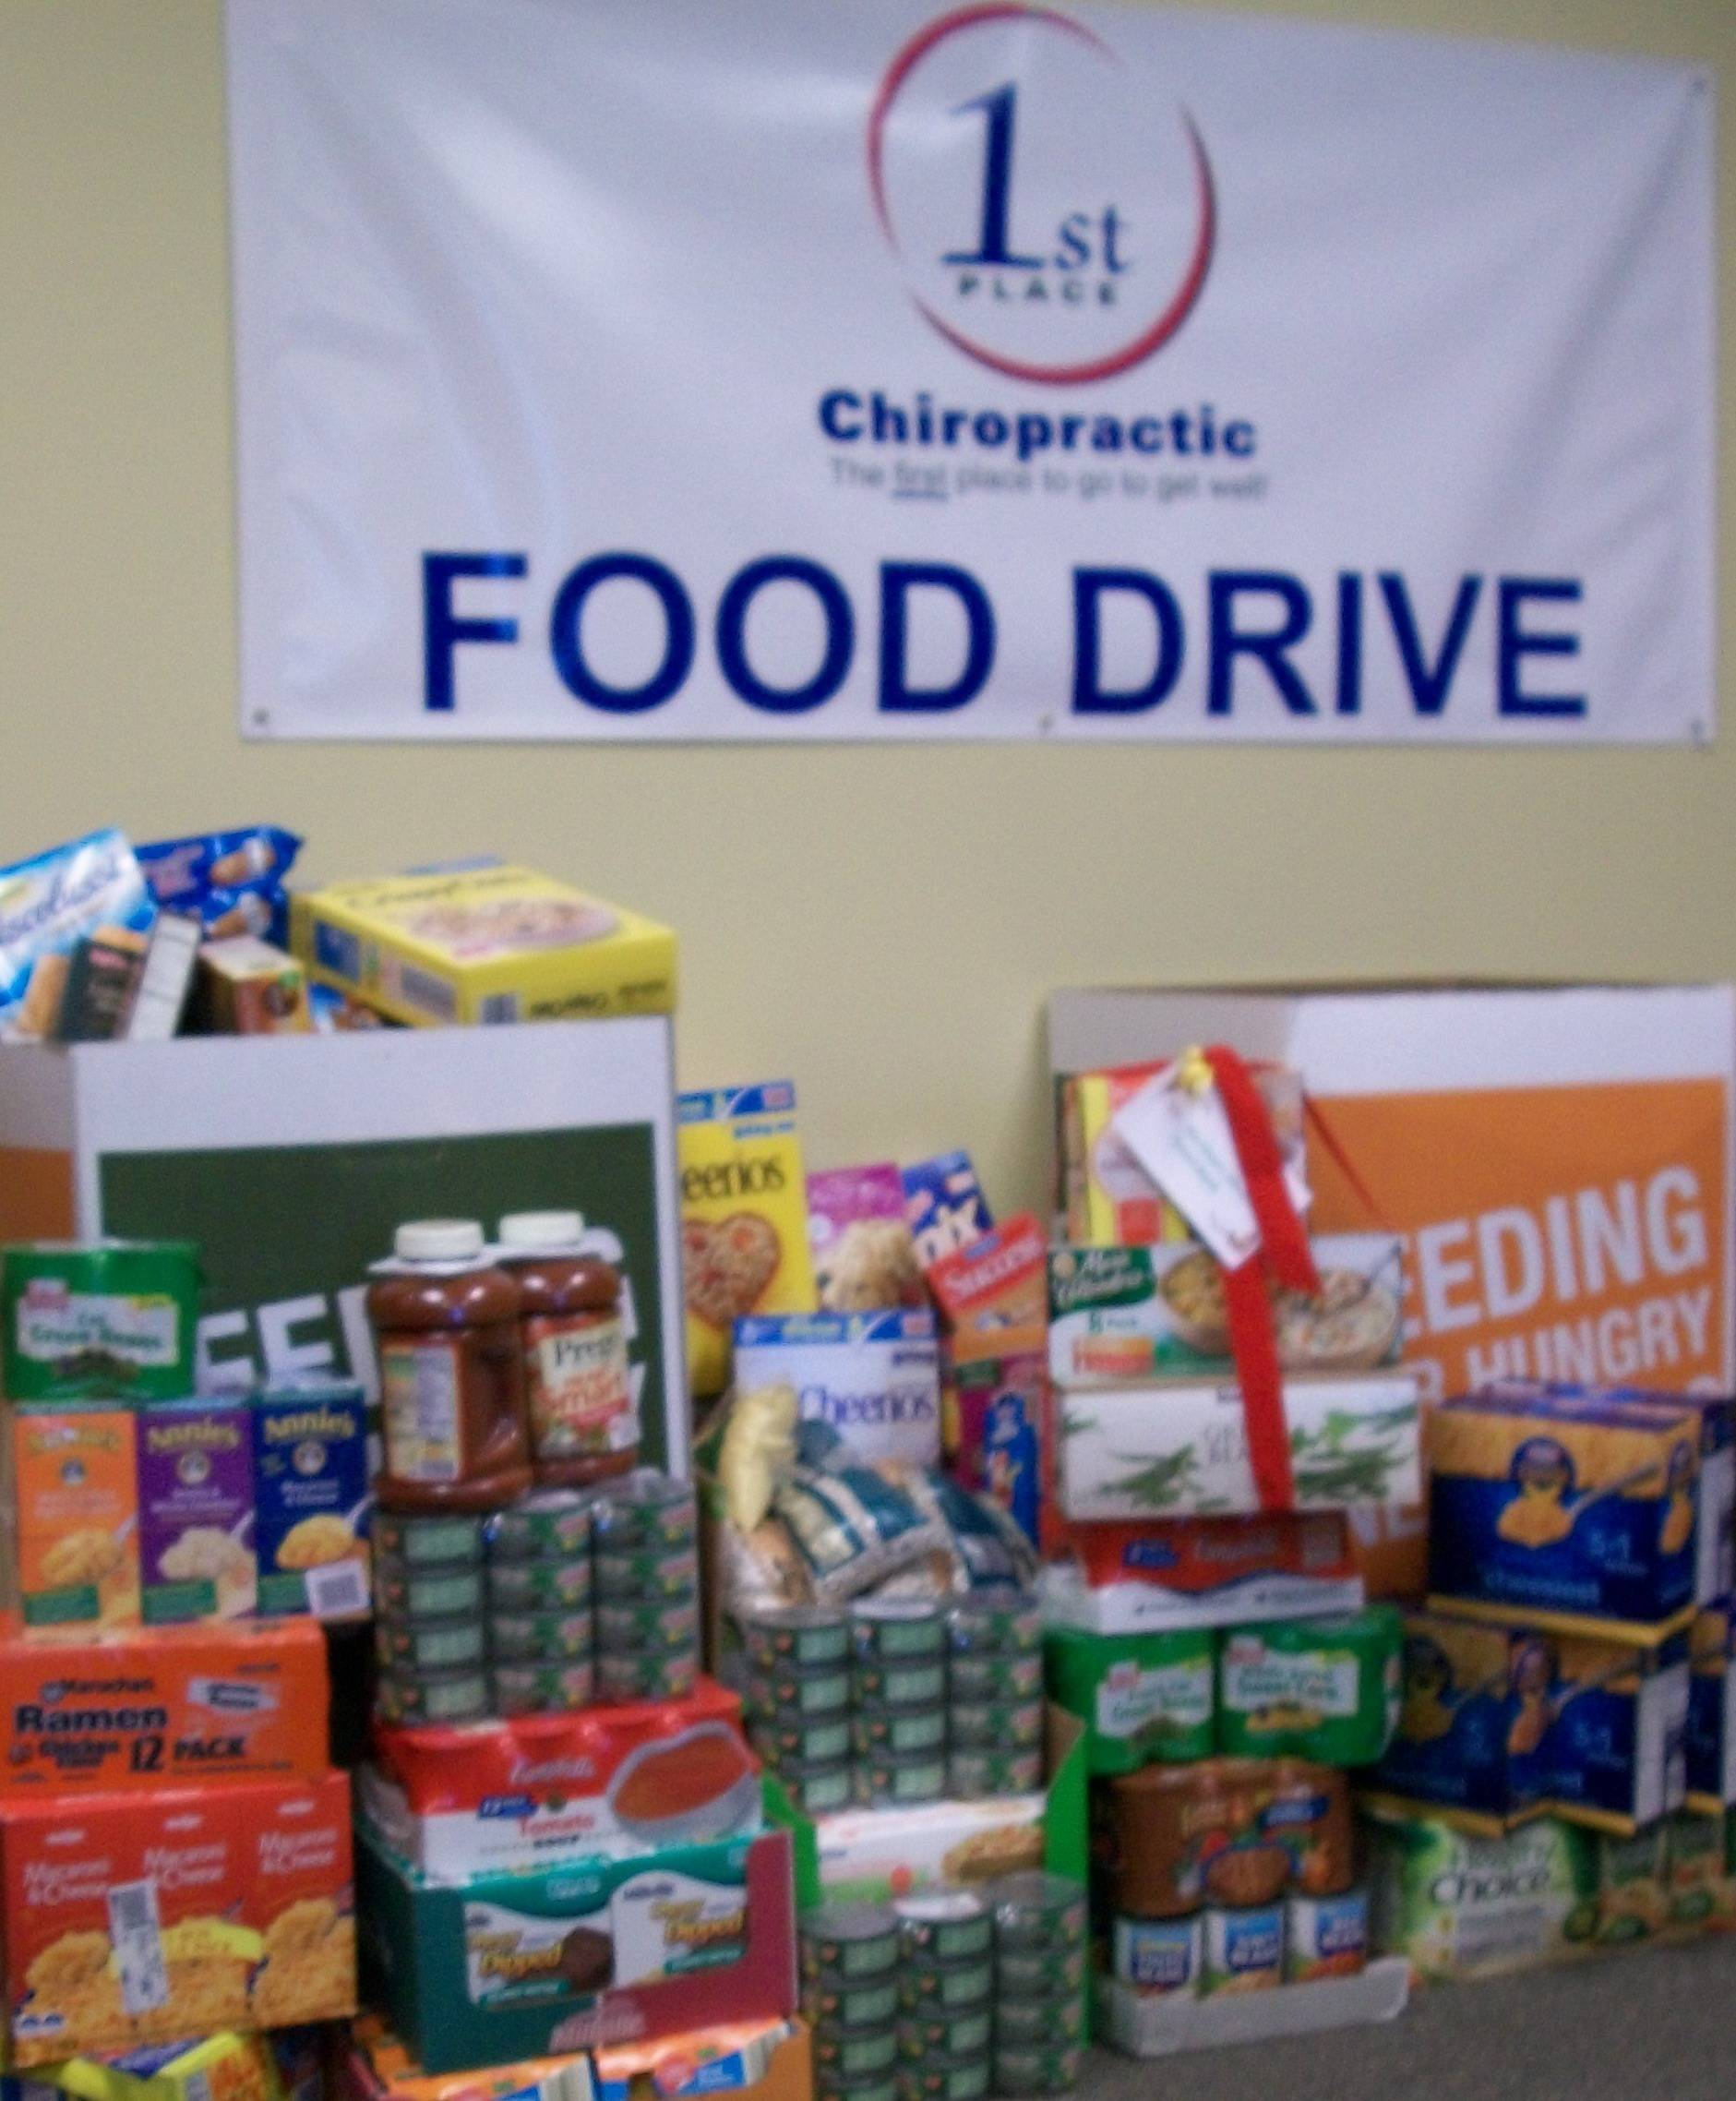 1st Place Chiropractic food drive for the Northern Illinois Food Bank in Geneva, IL